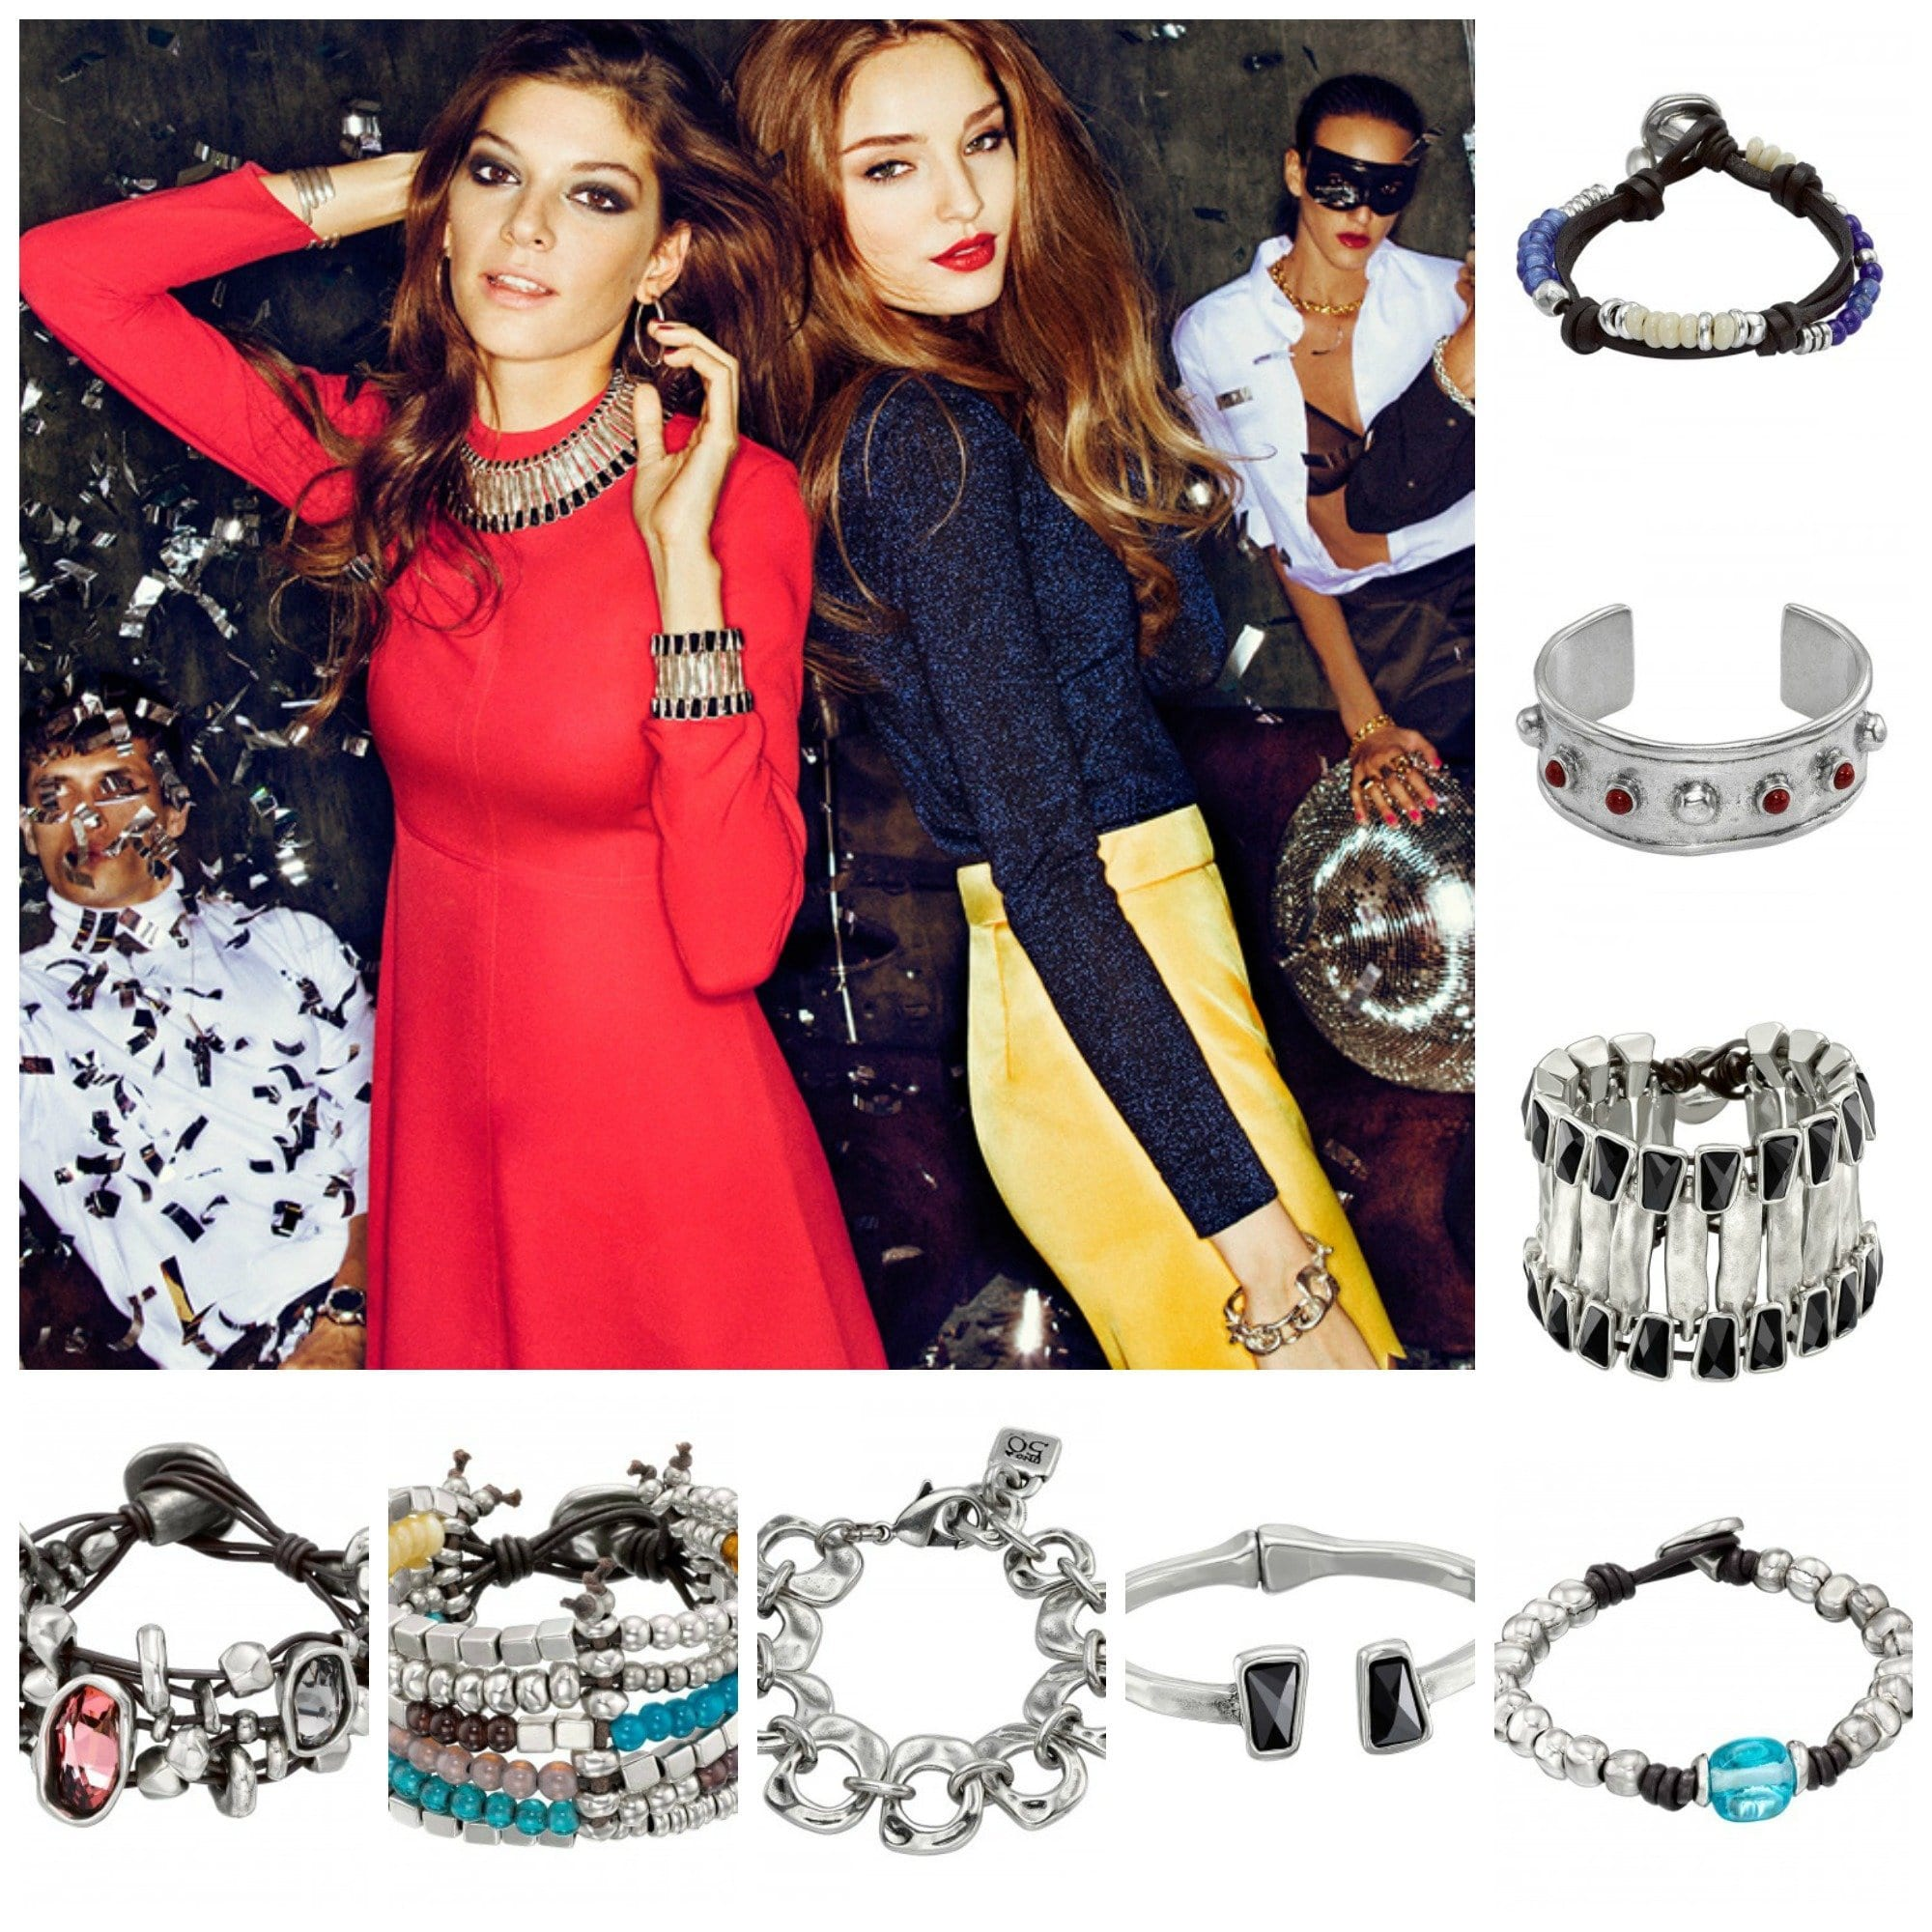 2019 Fashion Accessories 15 Items Every Girl Should Have